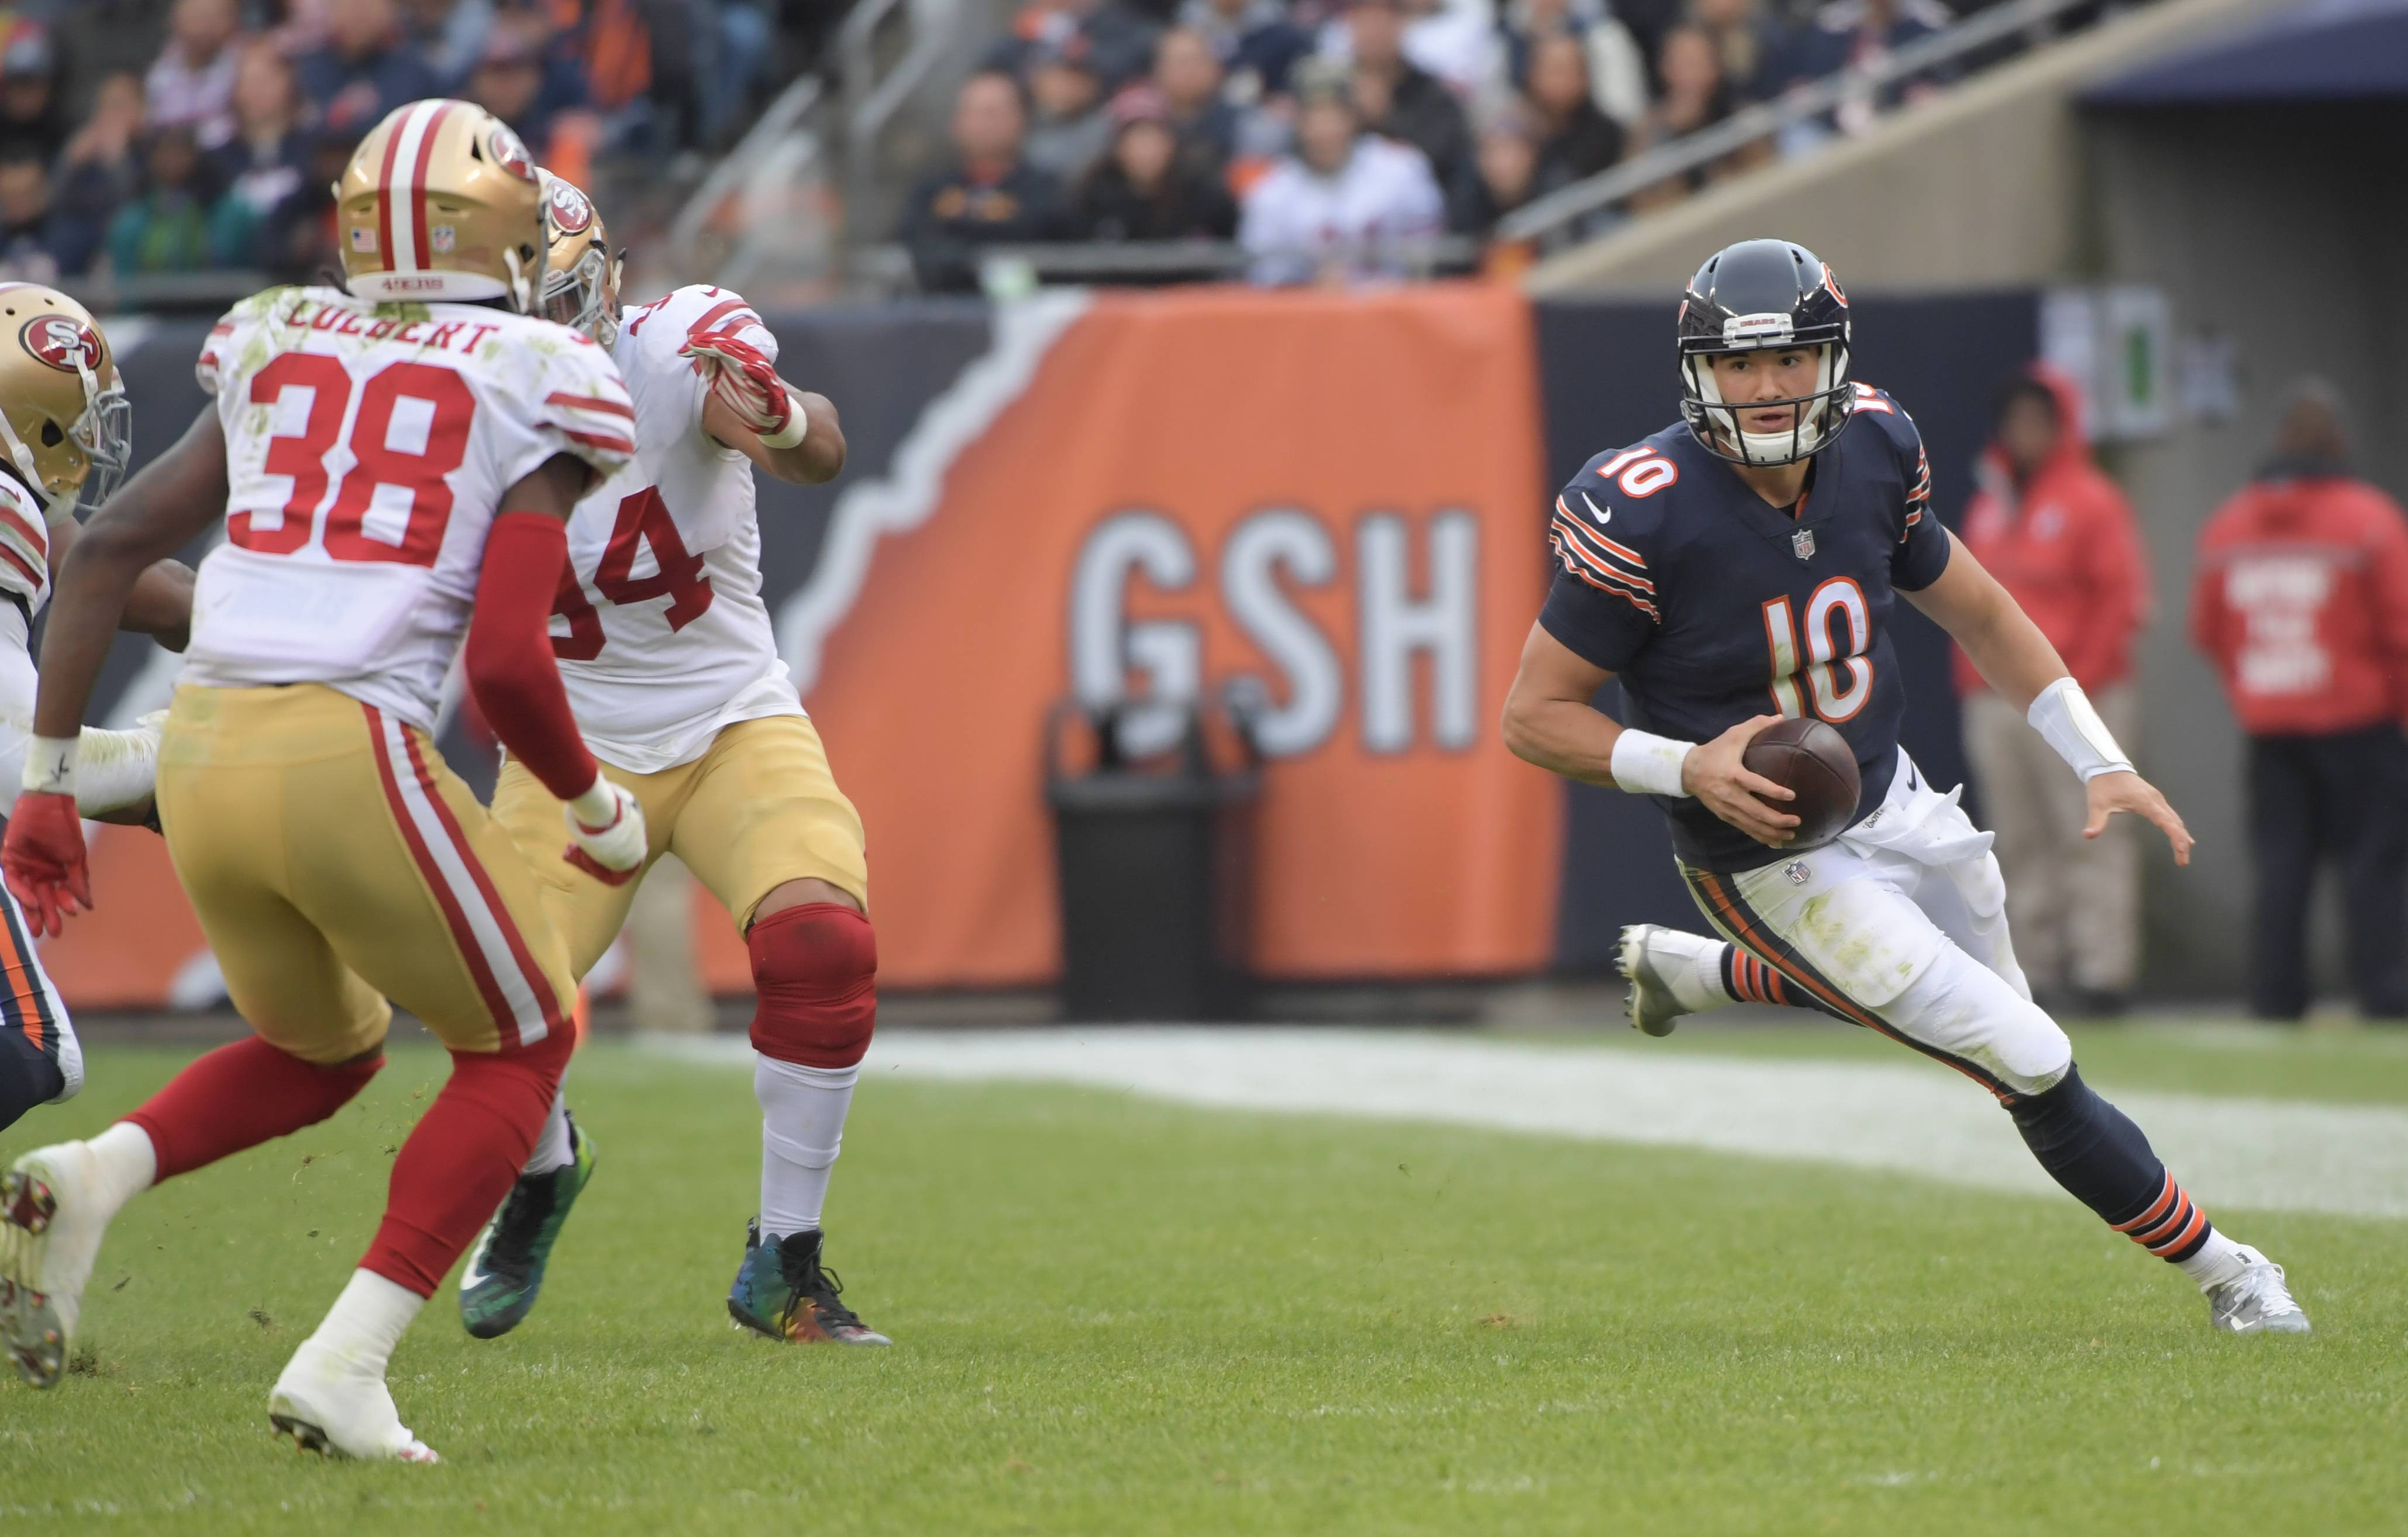 Mark Black/mblack@dailyherald.comChicago Bears' quarterback Mitchell Trubisky (10) scrambles with the ball toward the sideline during the Bears 14-15 loss to the San Francisco 49ers at Soldier Field on December 3, 2017.